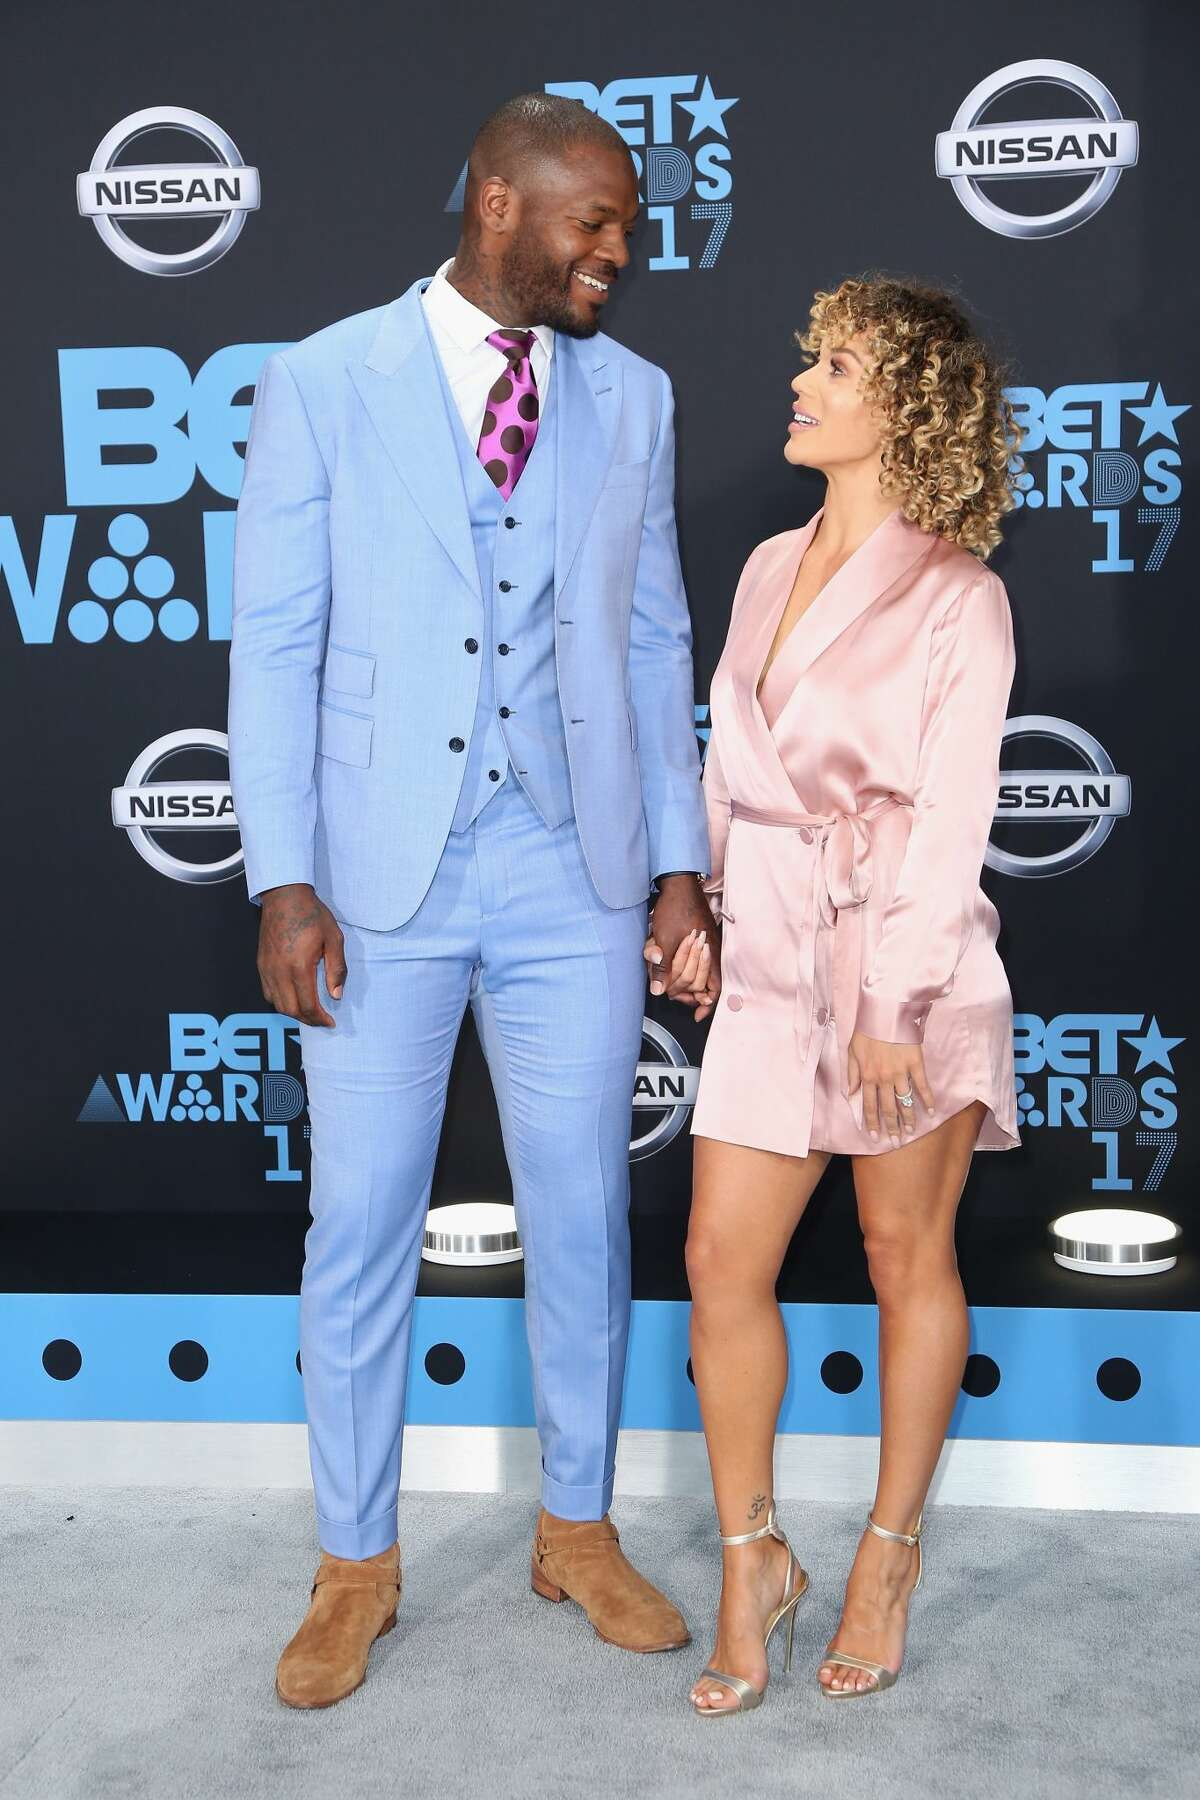 LOS ANGELES, CA - JUNE 25: Martellus Bennett (L) and Siggi Walker at the 2017 BET Awards at Microsoft Square on June 25, 2017 in Los Angeles, California. (Photo by Maury Phillips/Getty Images)